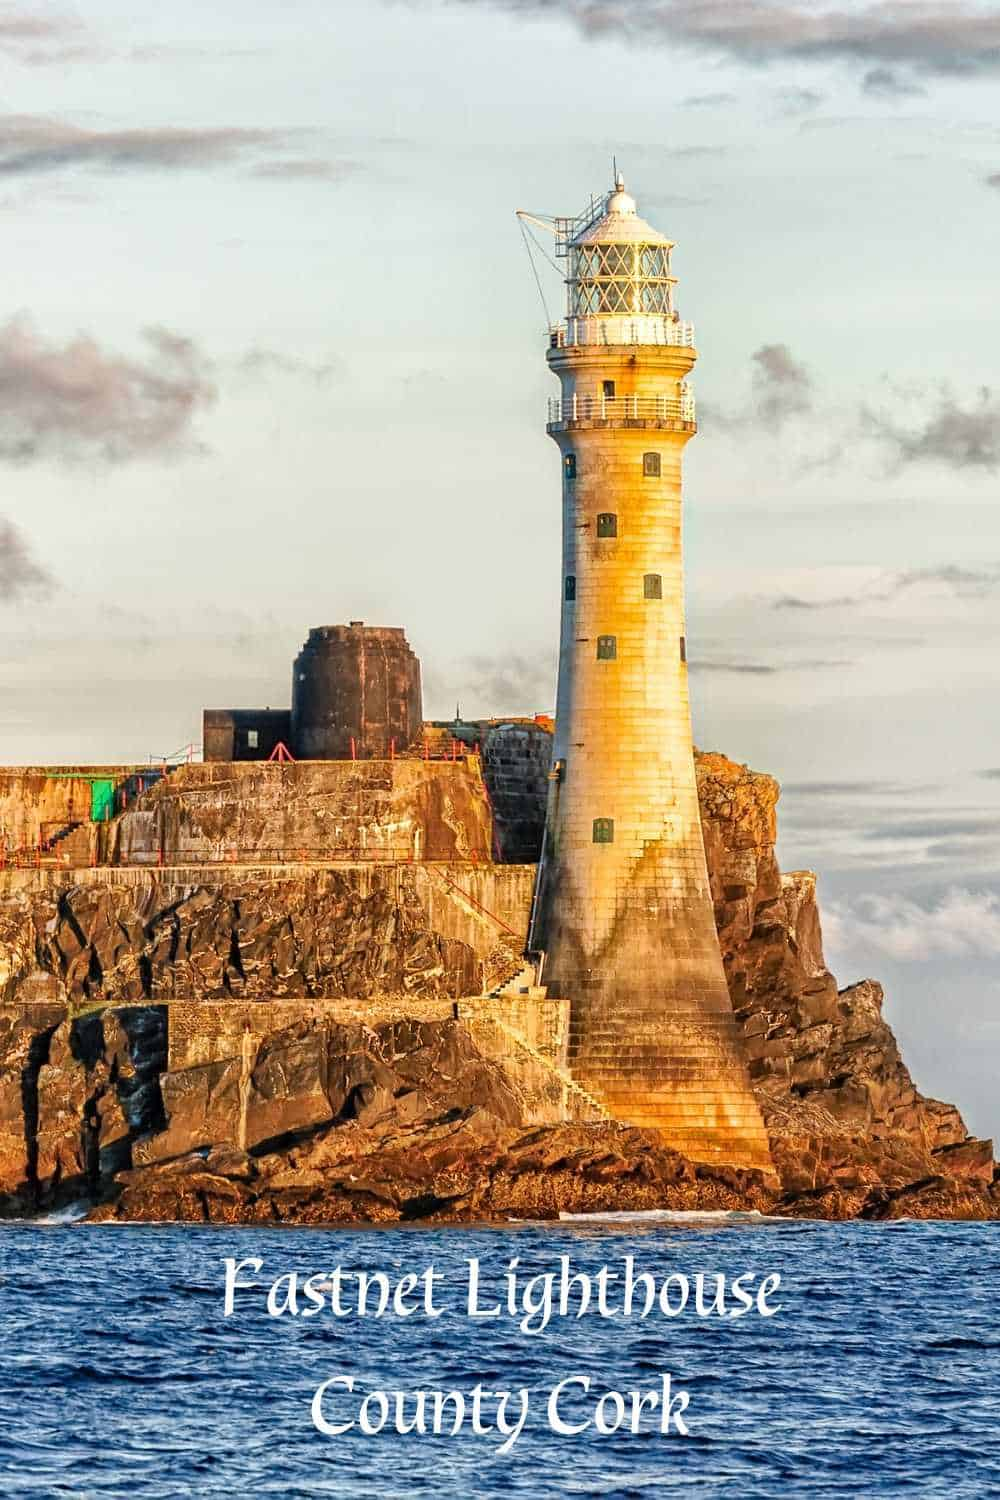 Image of the Fastnet Lighthouse off the coast of County Cork Ireland